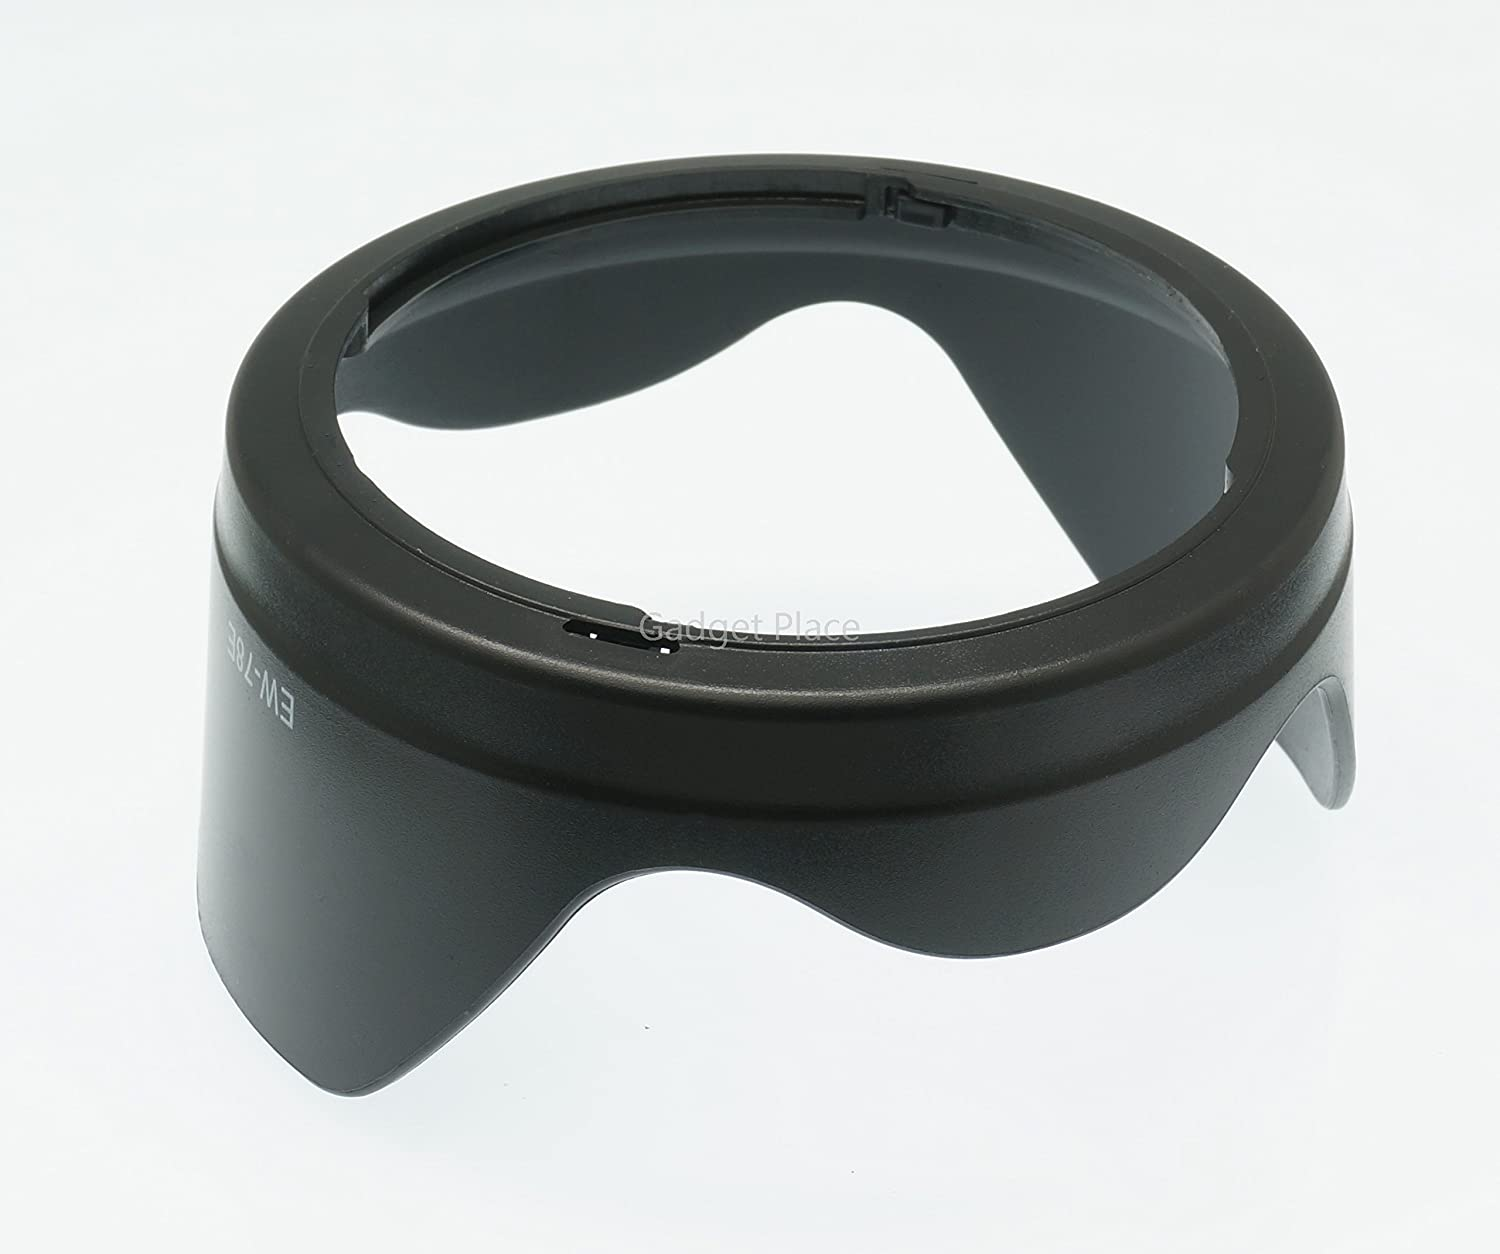 Gadget Place EW-78E Lens Hood for Canon EF-S 15-85 f//3.5-5.6 IS USM